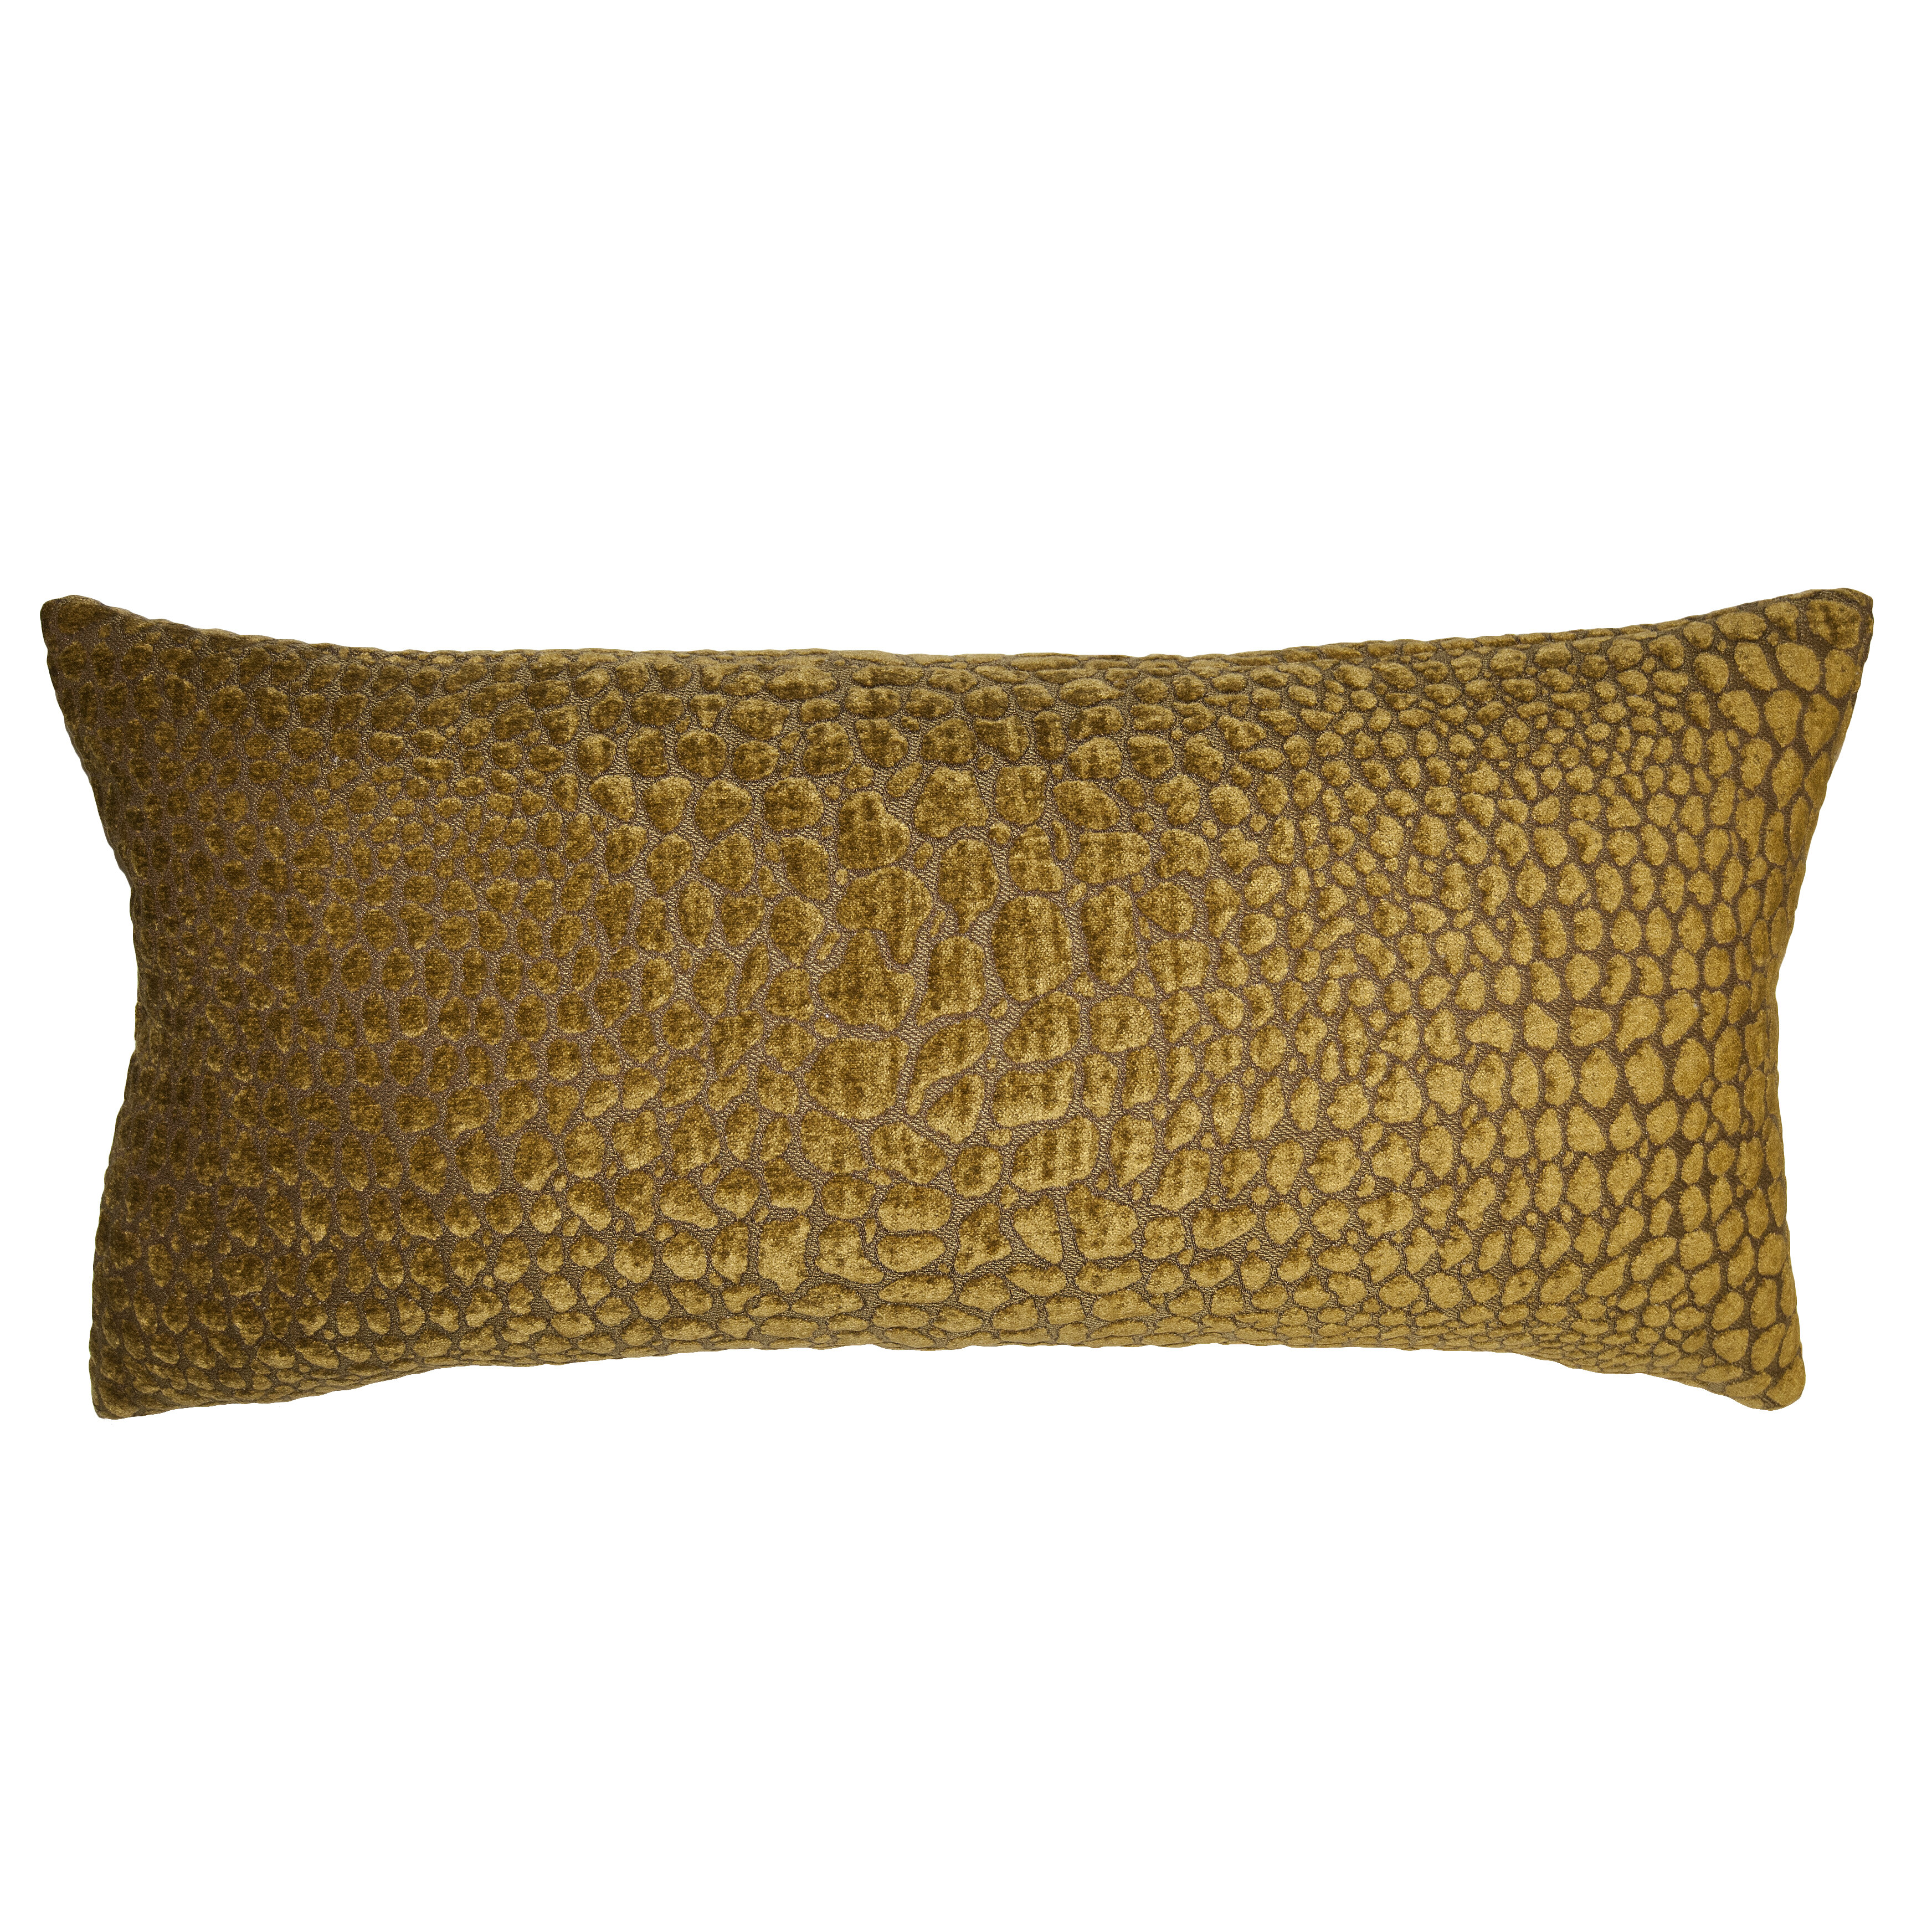 Square Feathers Croco Feathers Animal Print Pillow Perigold